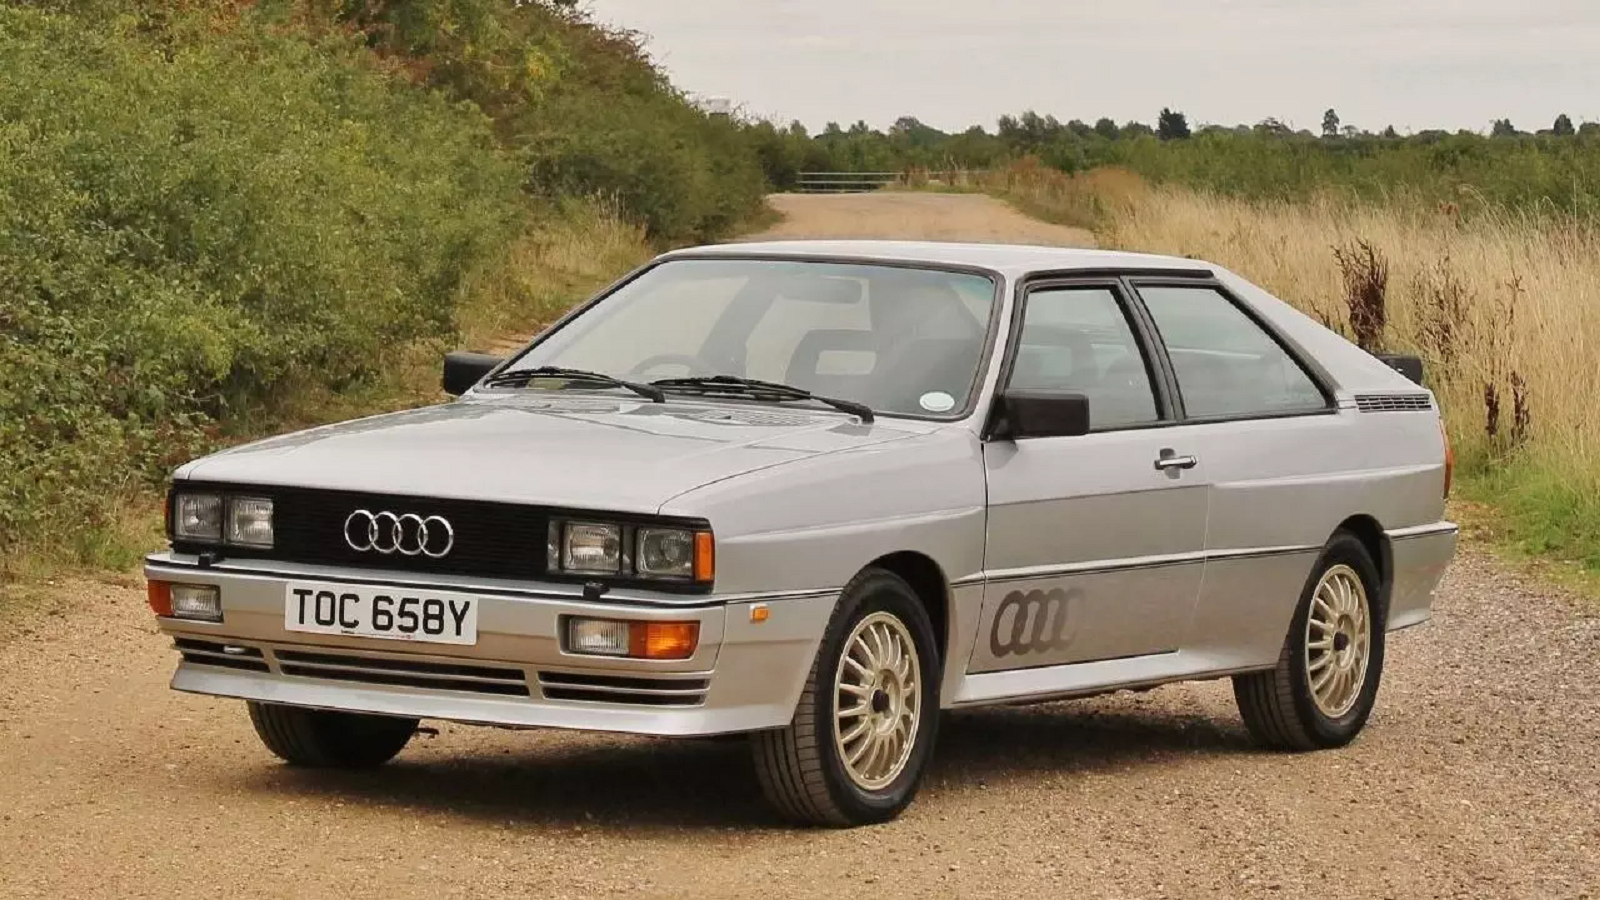 What brought the Audi Quattro to market?